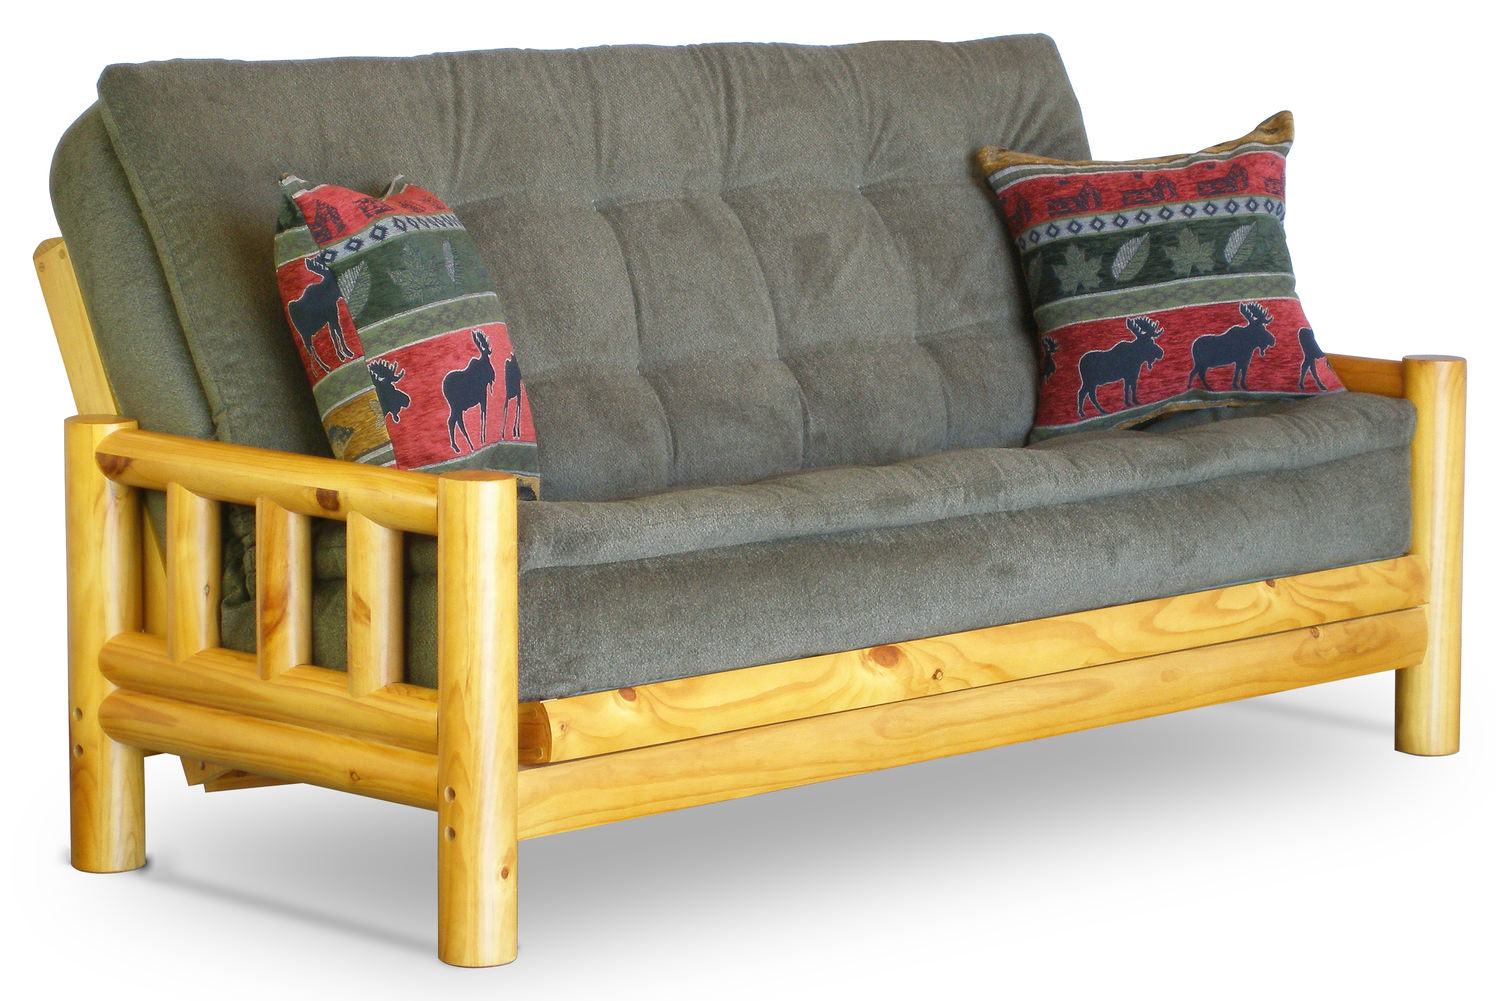 Rustic Log Futon Solid Pine Couch Amish Wood Futon